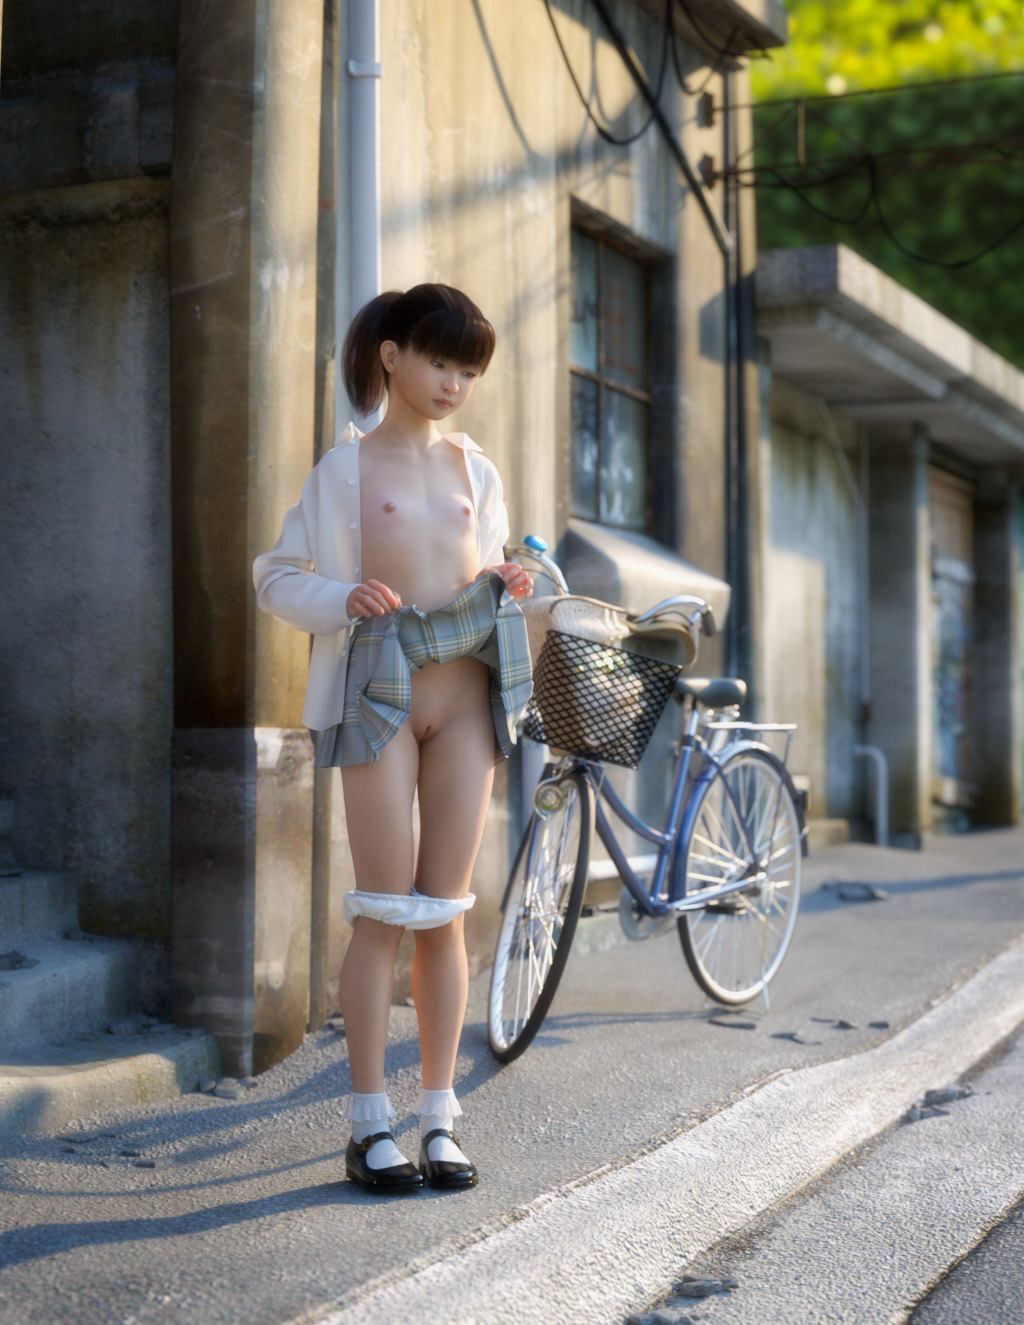 1girl 3dcg ankle_socks asian bangs bicycle black_hair blunt_bangs breasts highres looking_away mary_janes open_clothes open_shirt outdoors panties_around_knees pantsu pantsu_pull photorealistic ponytail public_nudity pussy shirt shoes small_breasts solo toufu_(tofusan) underwear upskirt